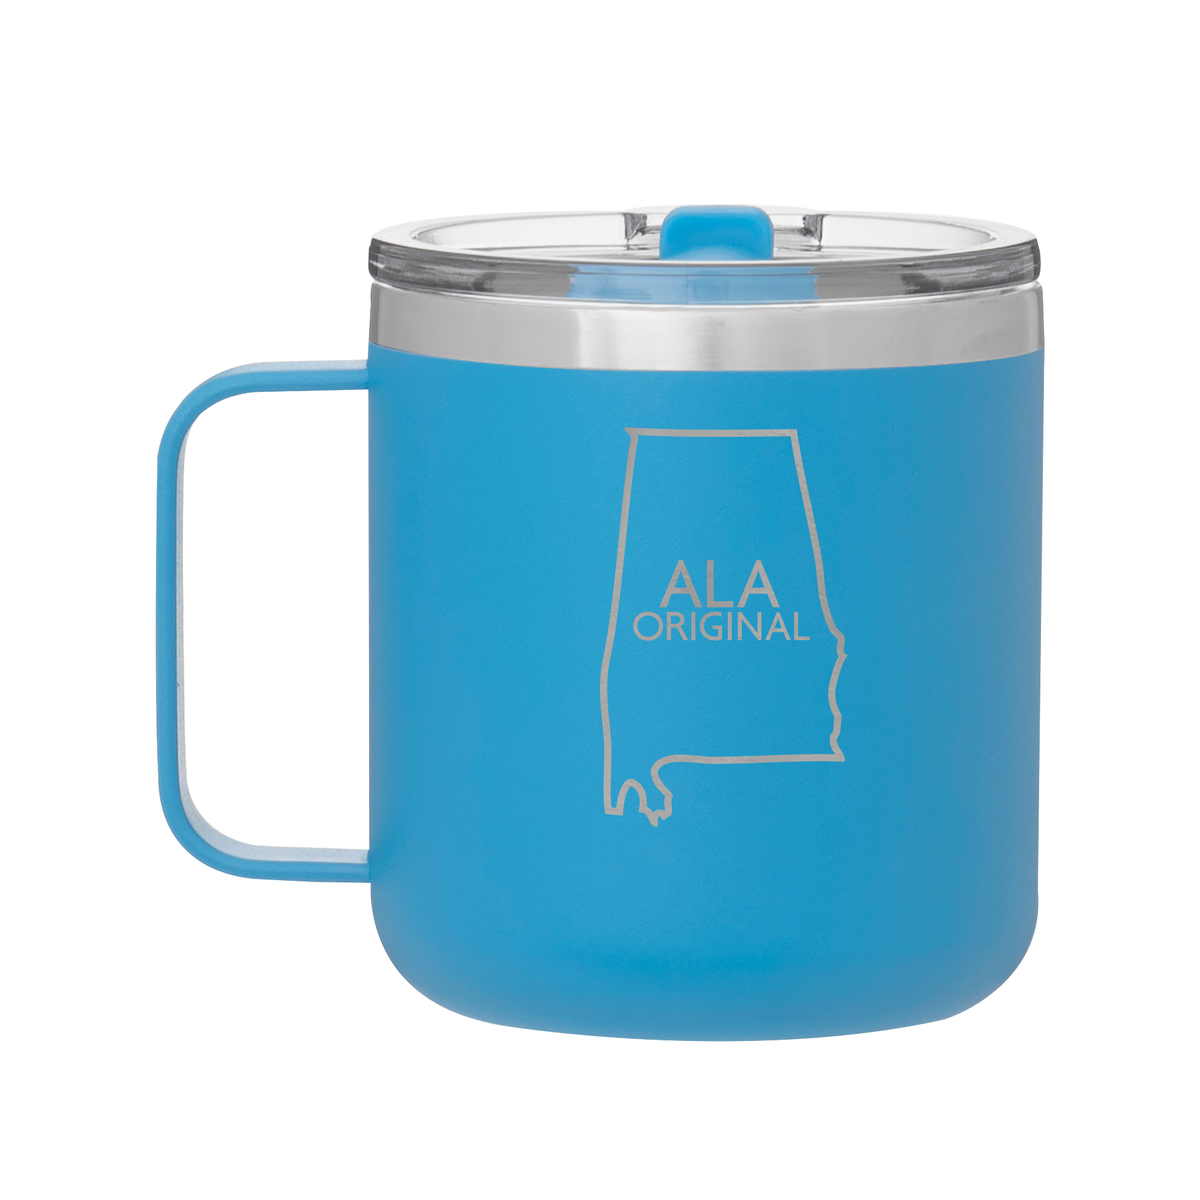 Alabama Original camp mug-Tumblers + Mugs-Maddie & Co.